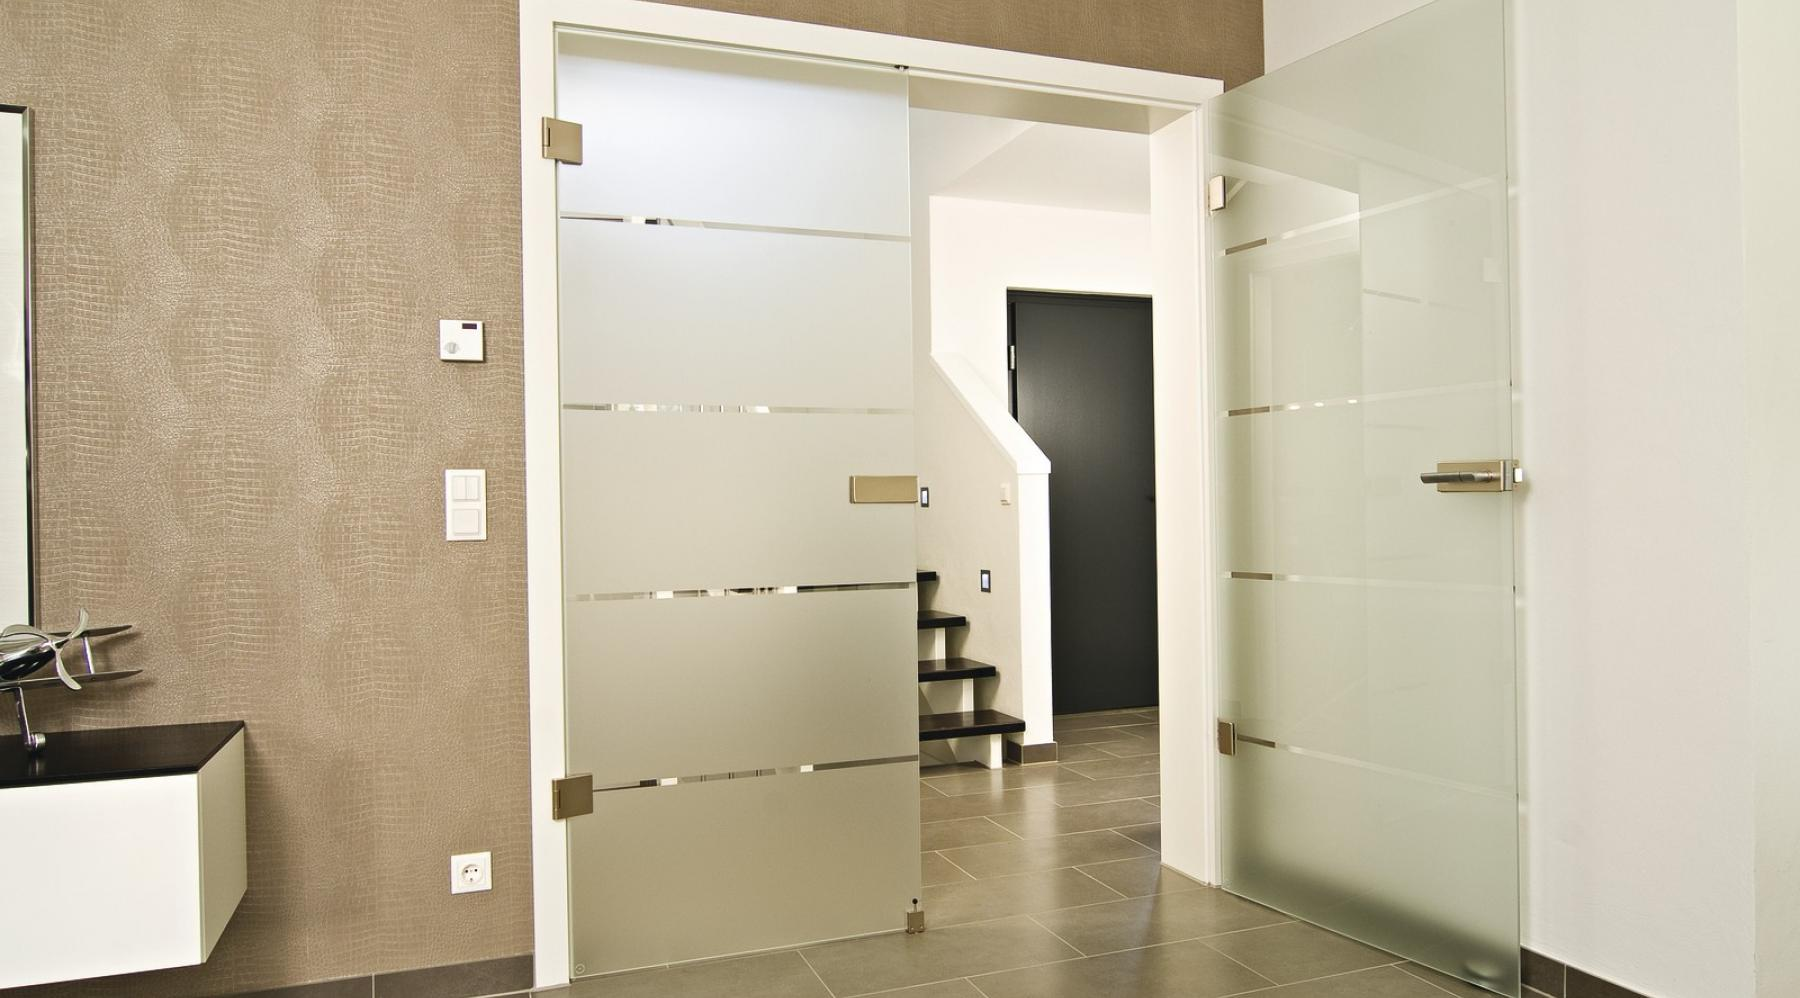 Galerie portes d 39 int rieur weigerding for Porte interieur double vitree